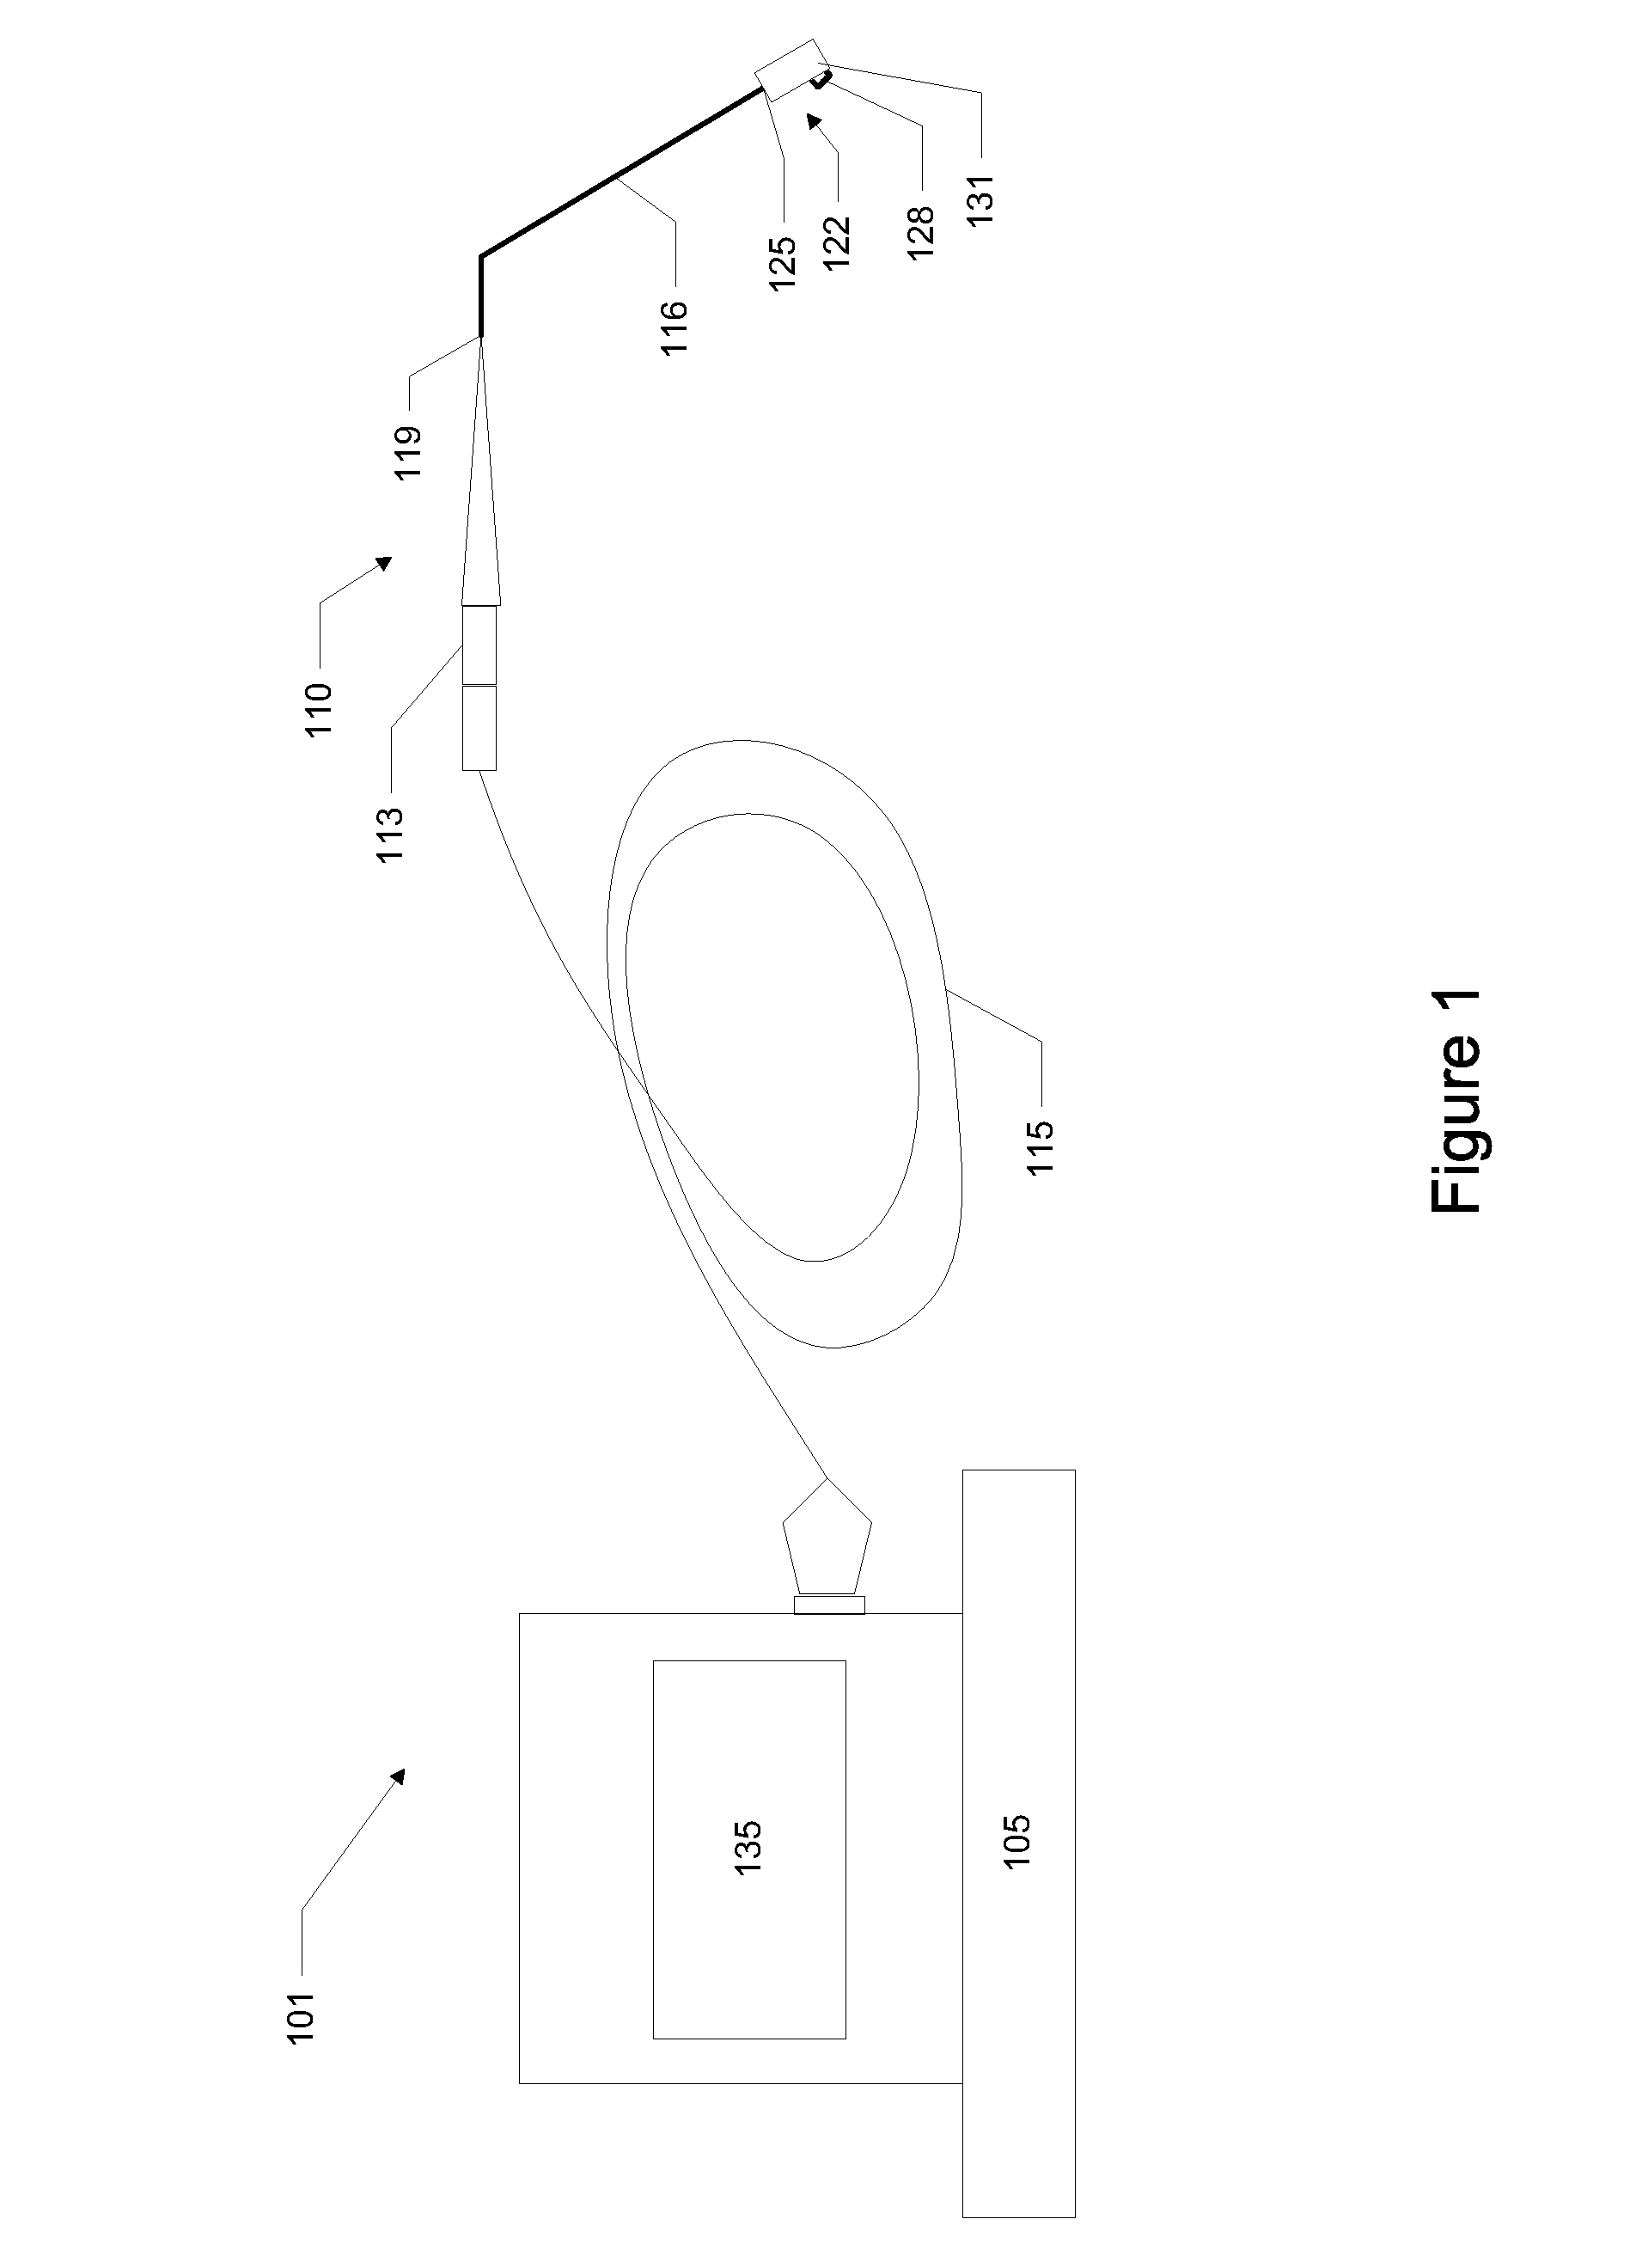 patent us device for assessing ischemia in nerve root patent drawing